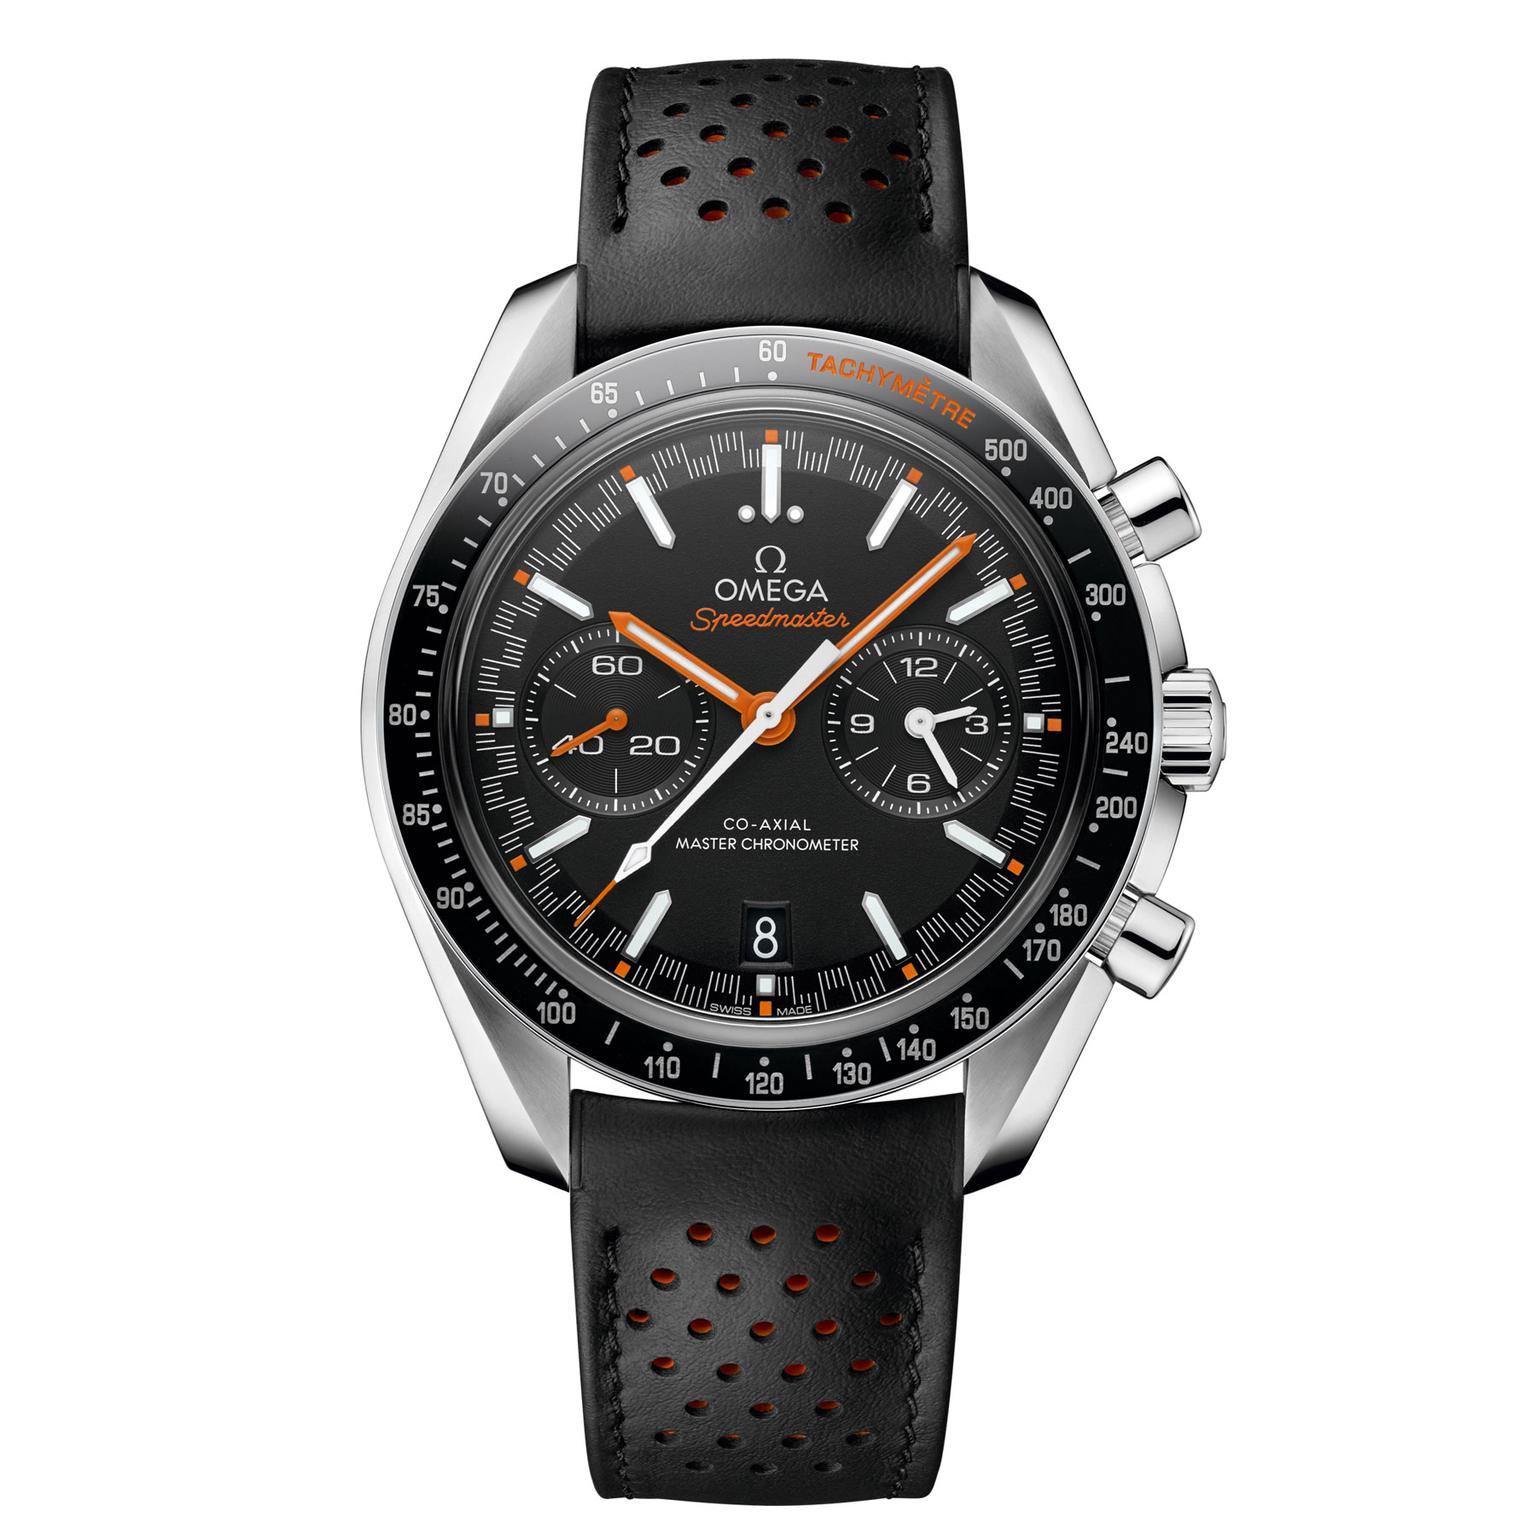 Omega Speedmaster Moonwatch Automatic Master Chronometer